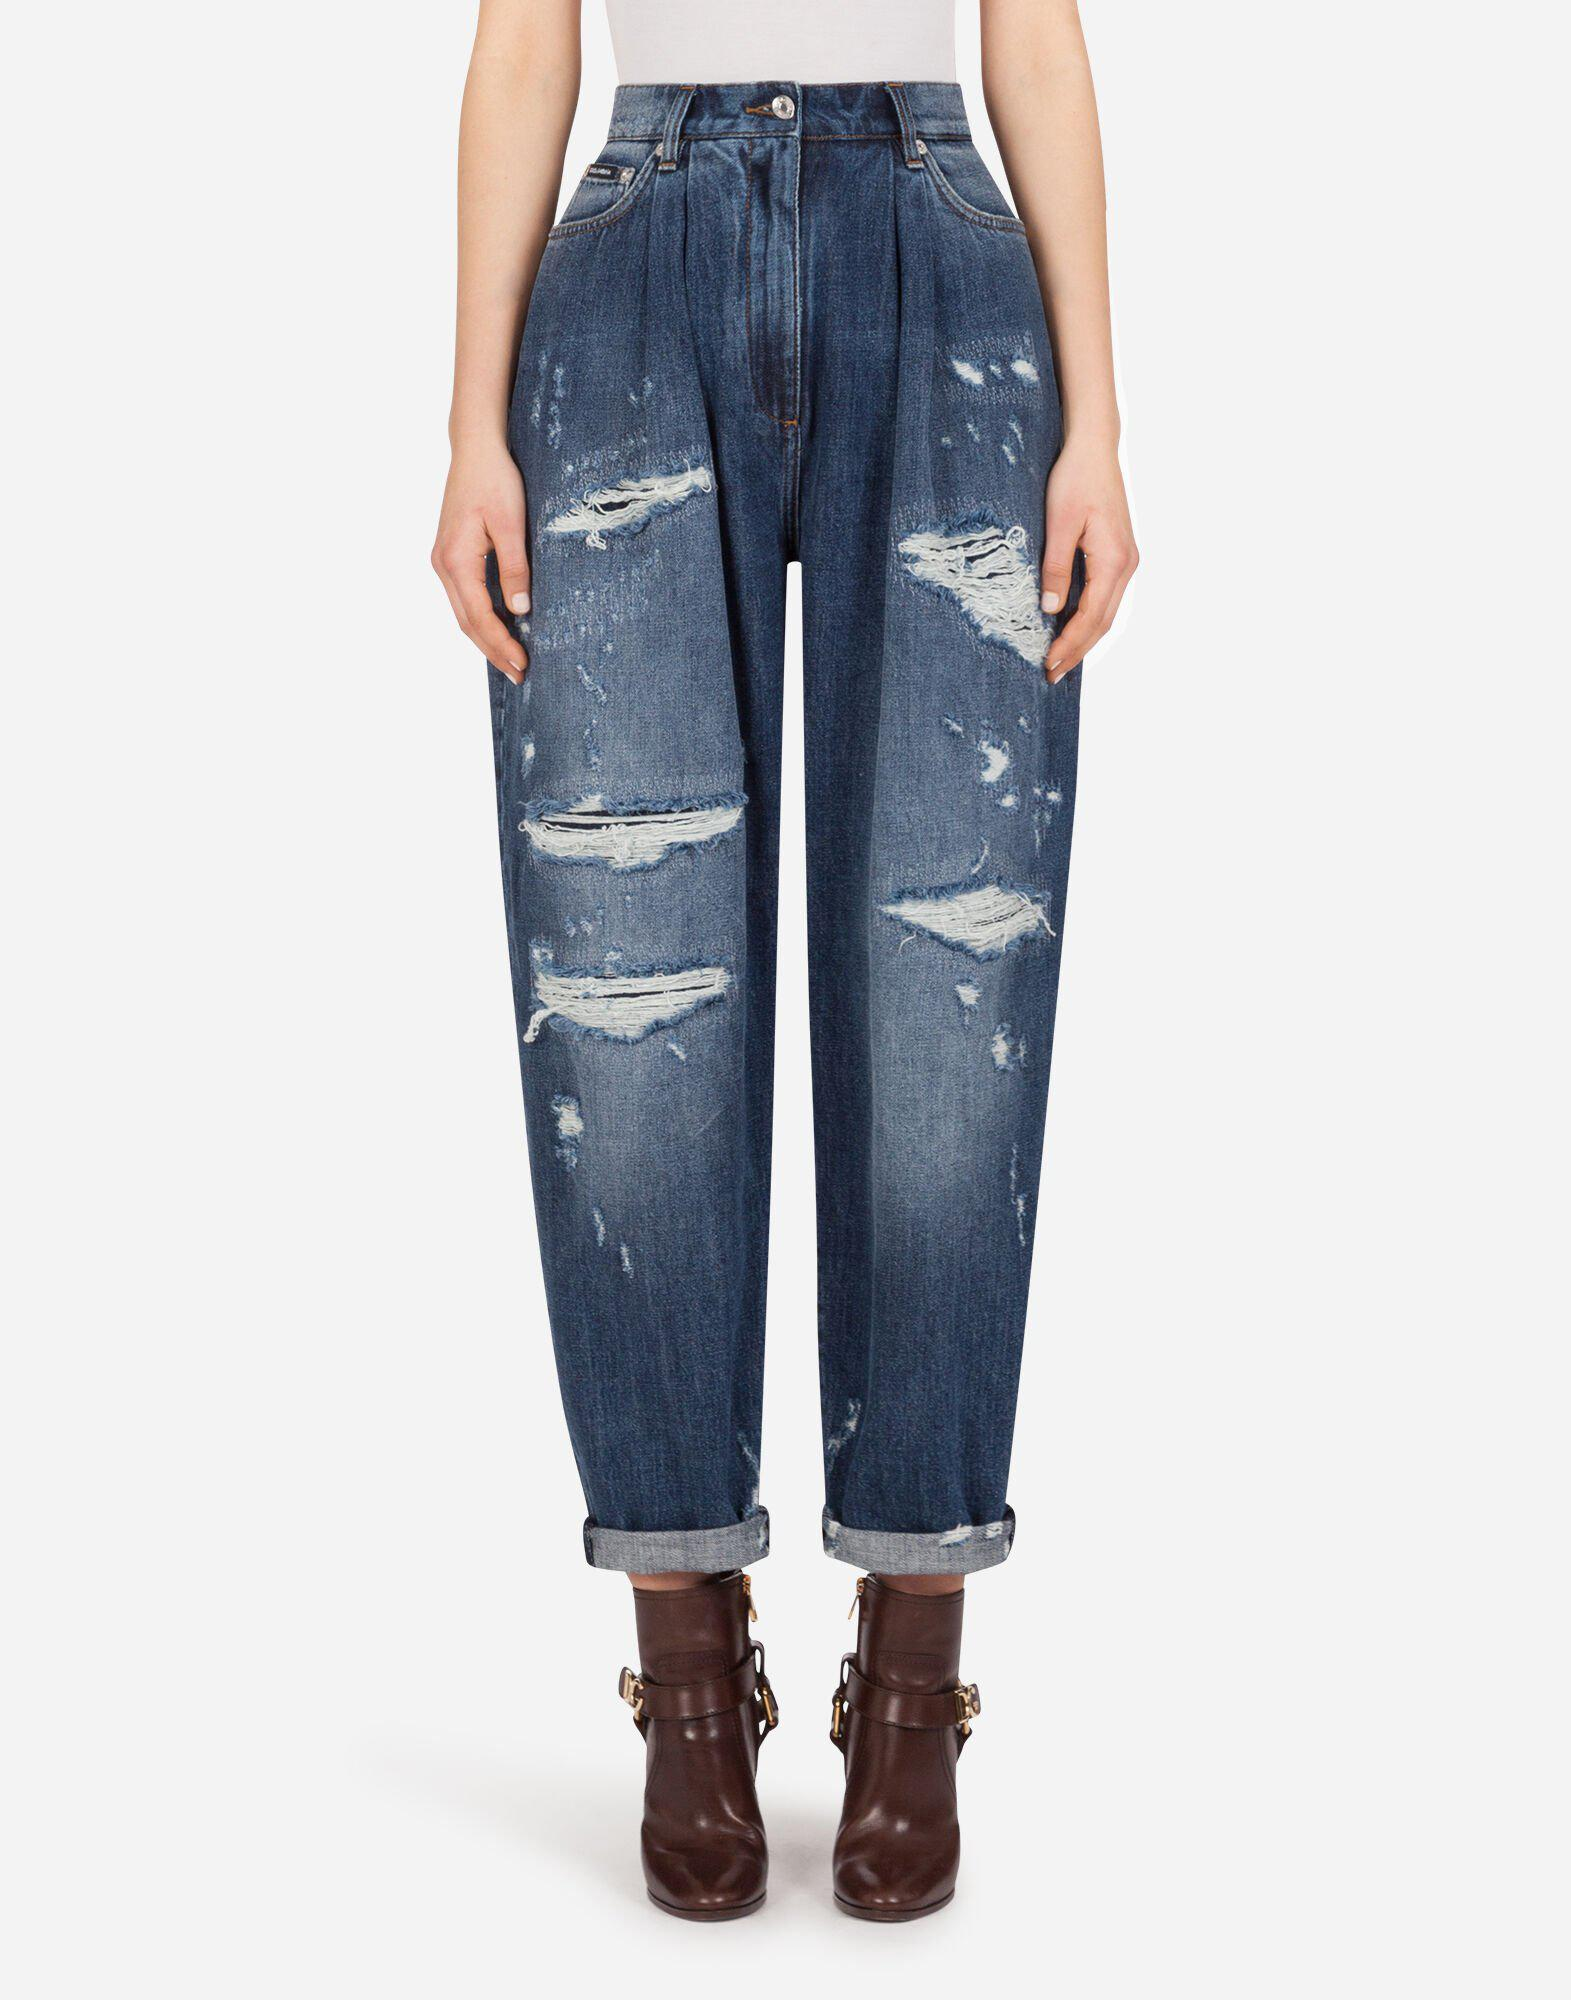 Balloon jeans in deep blue denim with rips